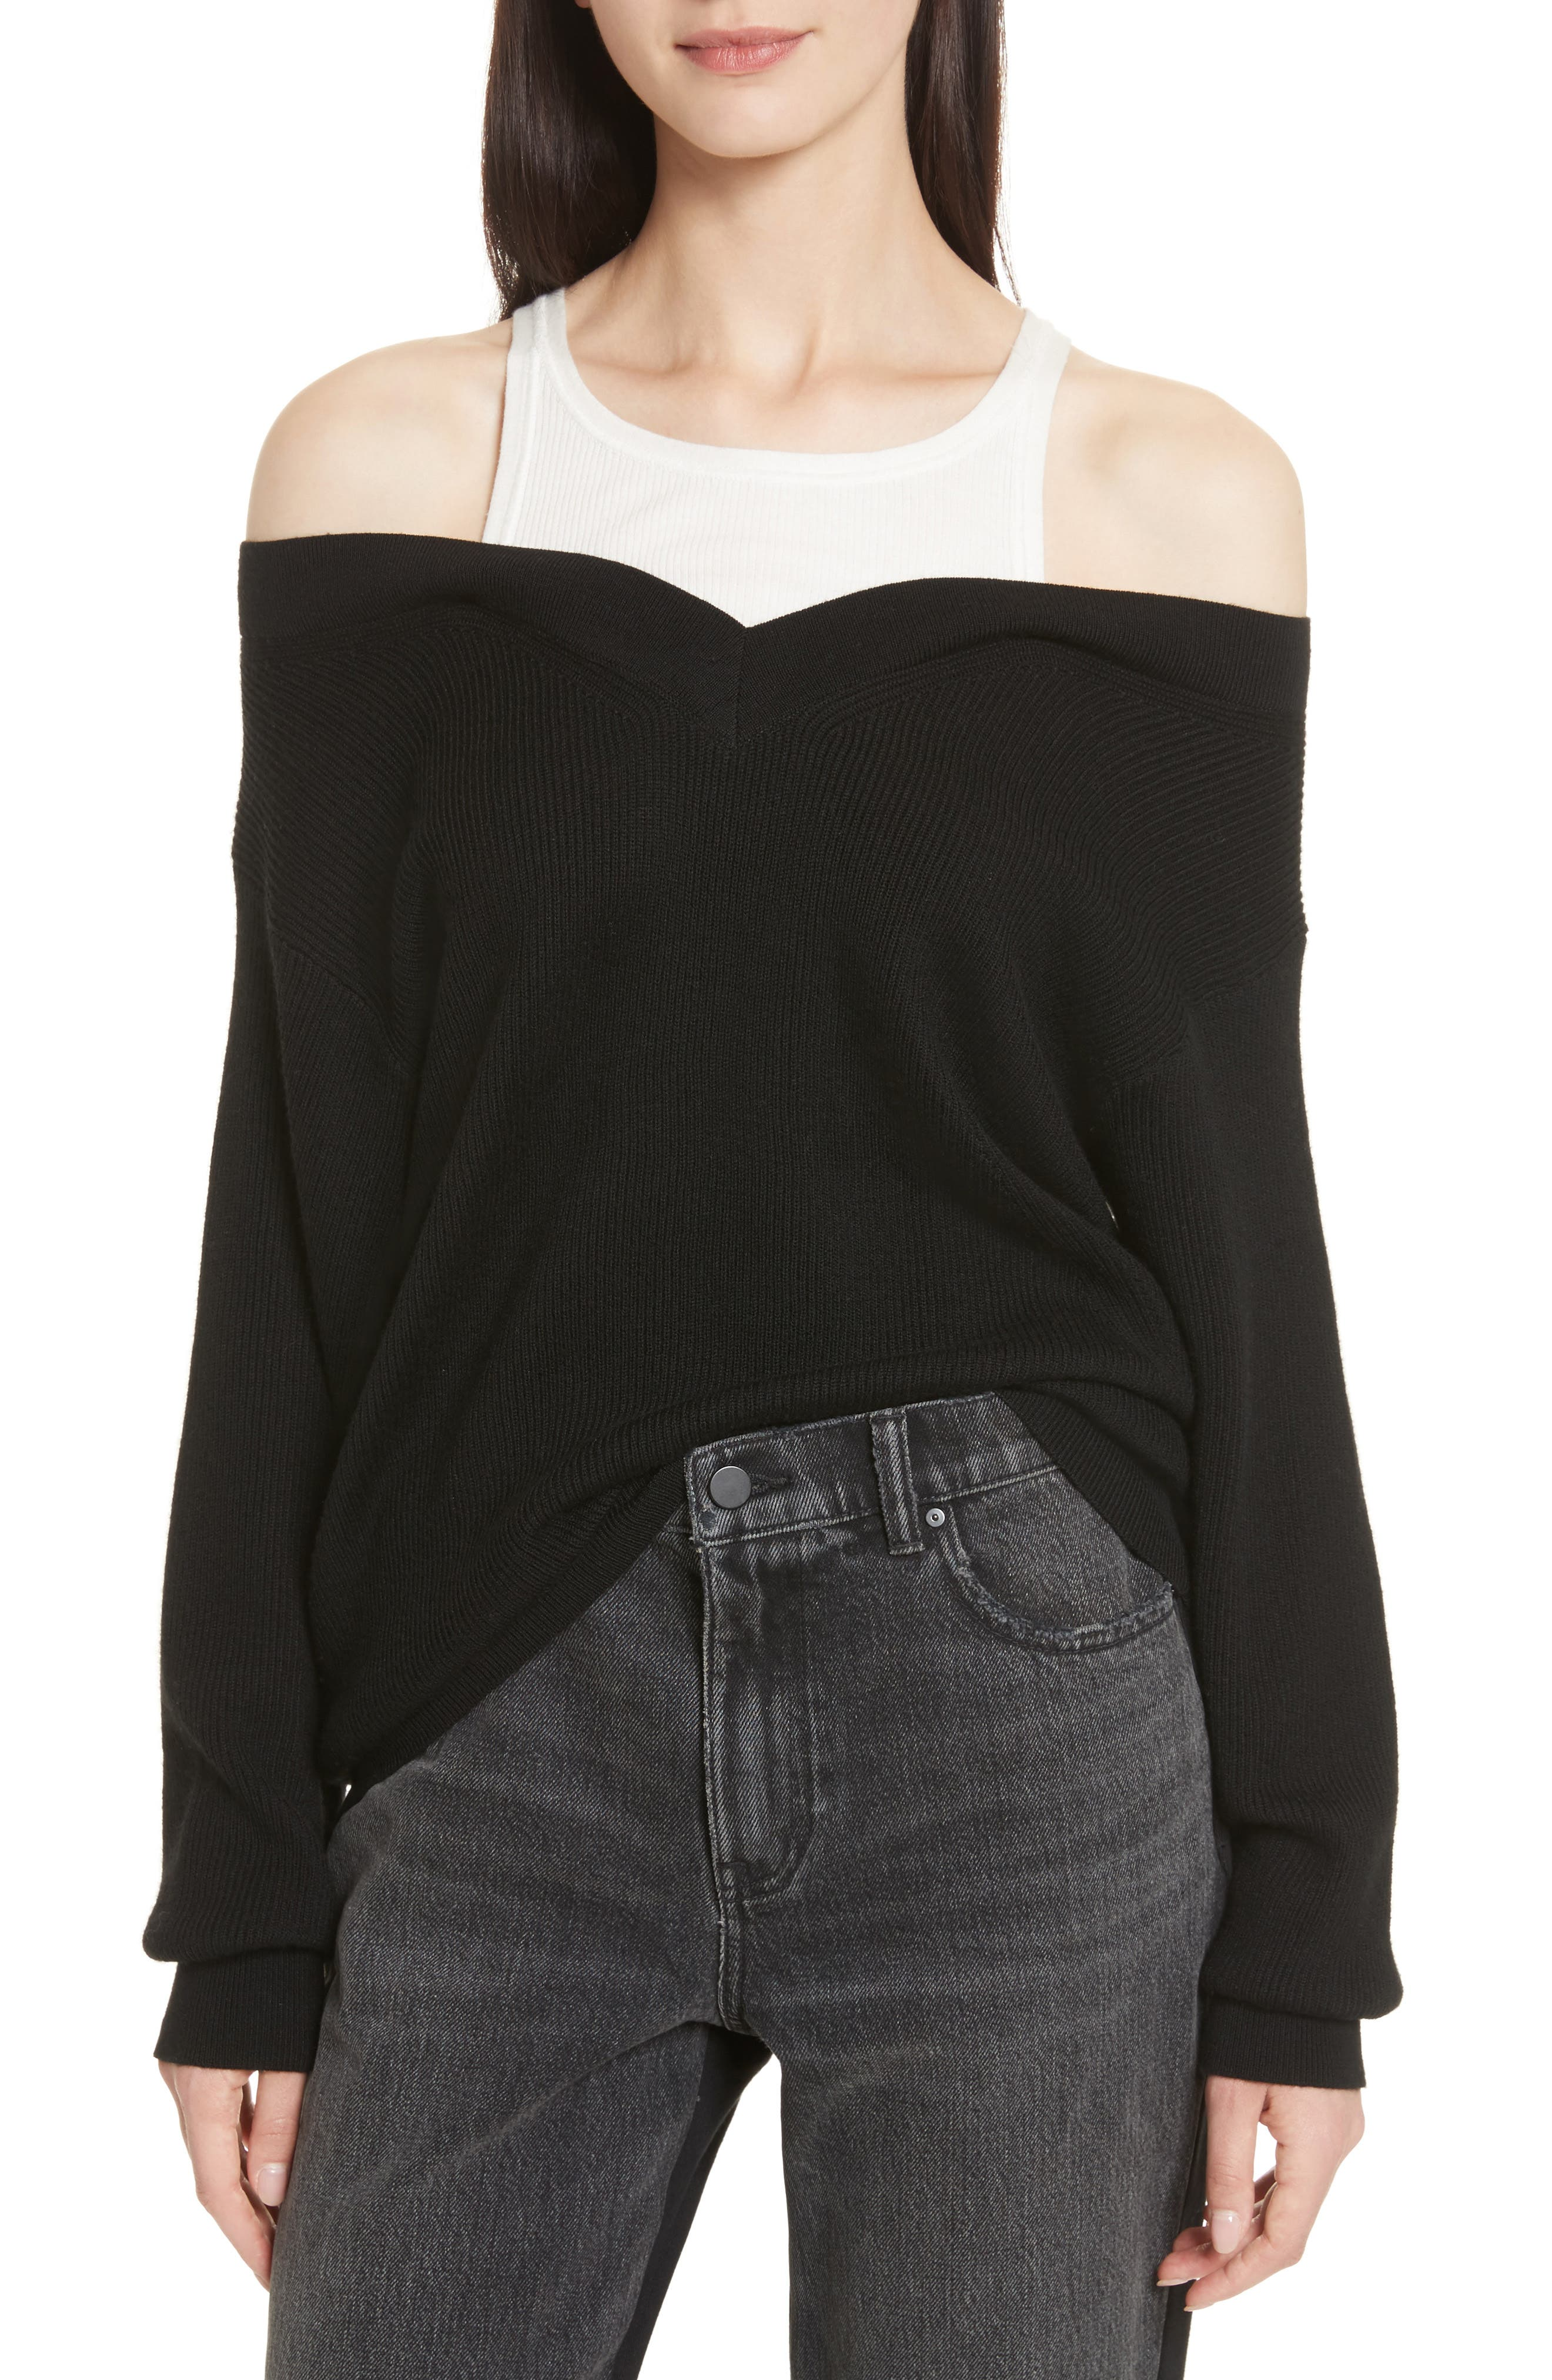 Main Image - T by Alexander Wang Bi-Layer Off-the-Shoulder Sweater with Inner Tank